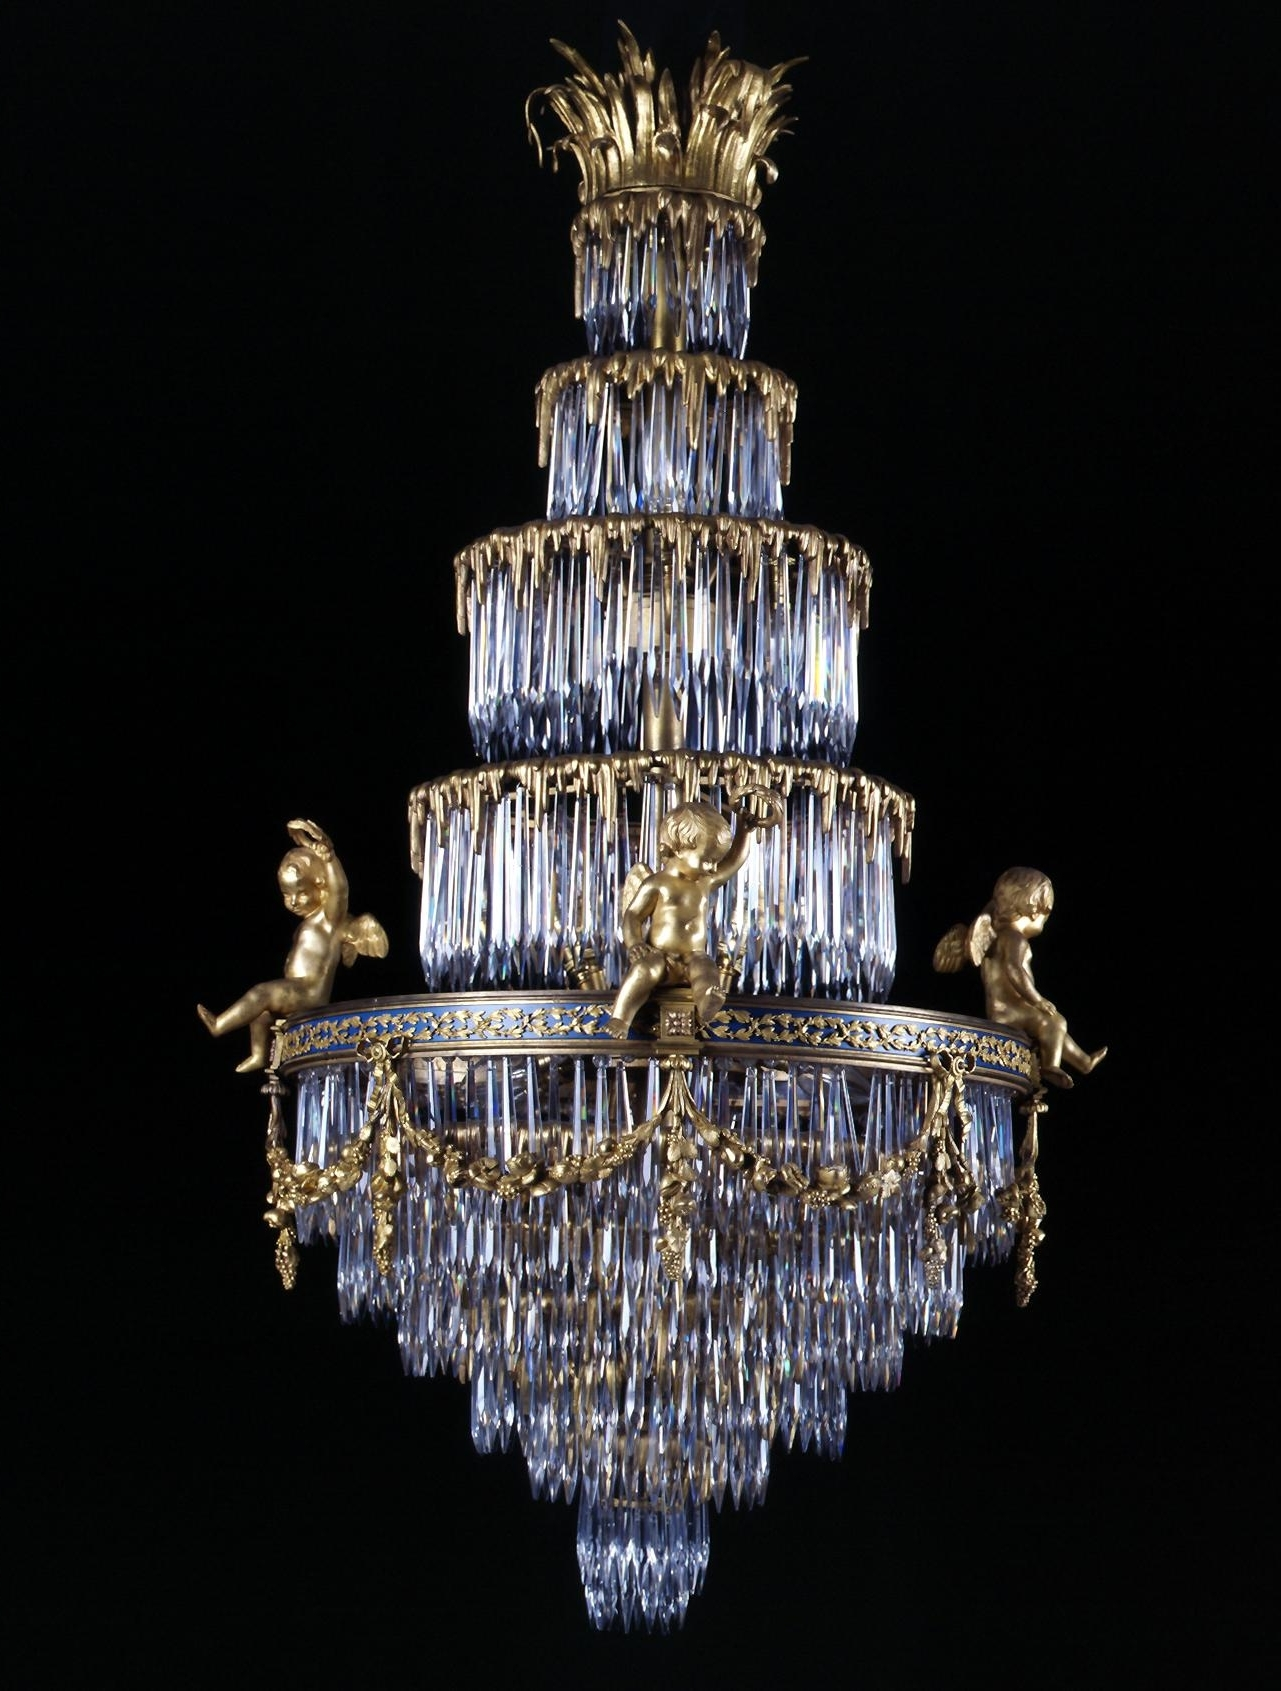 Latest Baccarat A Rare Crystal And Gilt Bronze Waterfall Chandelier French Inside Sparkly Chandeliers (View 9 of 20)